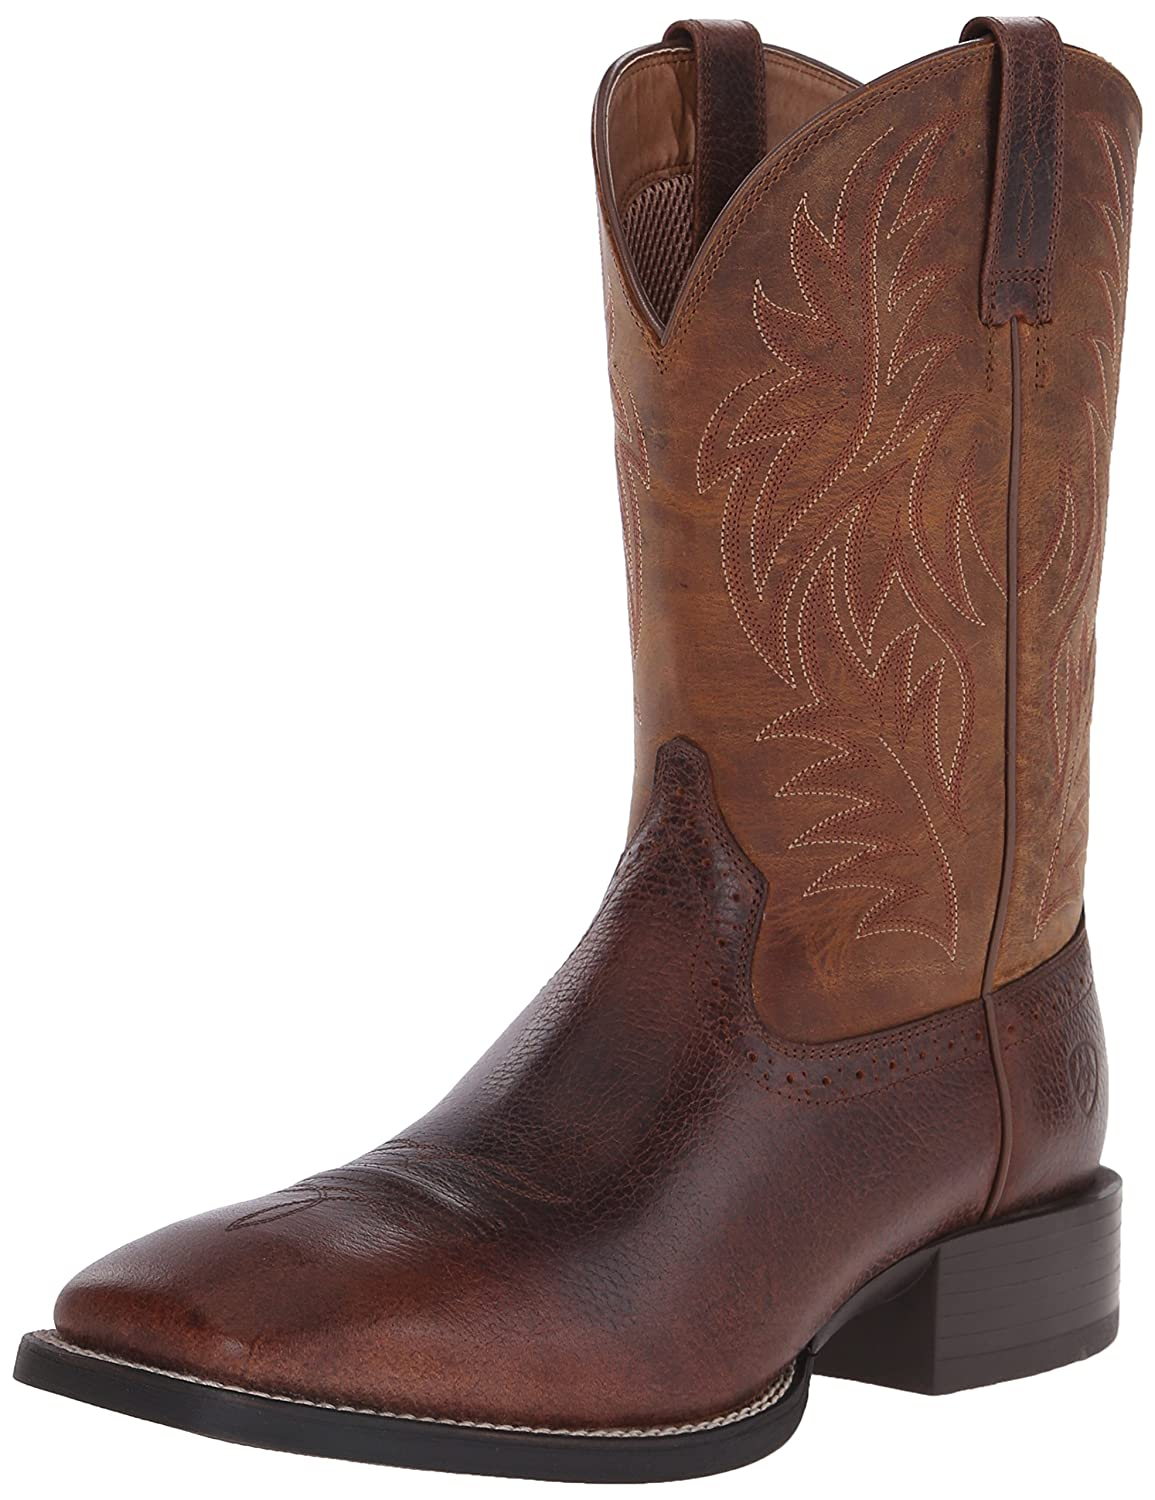 Ariat メンズ Fiddle Brown/Powder Brown 9 D(M) US 9 D(M) USFiddle Brown/Powder Brown B00U9XZQ3Y